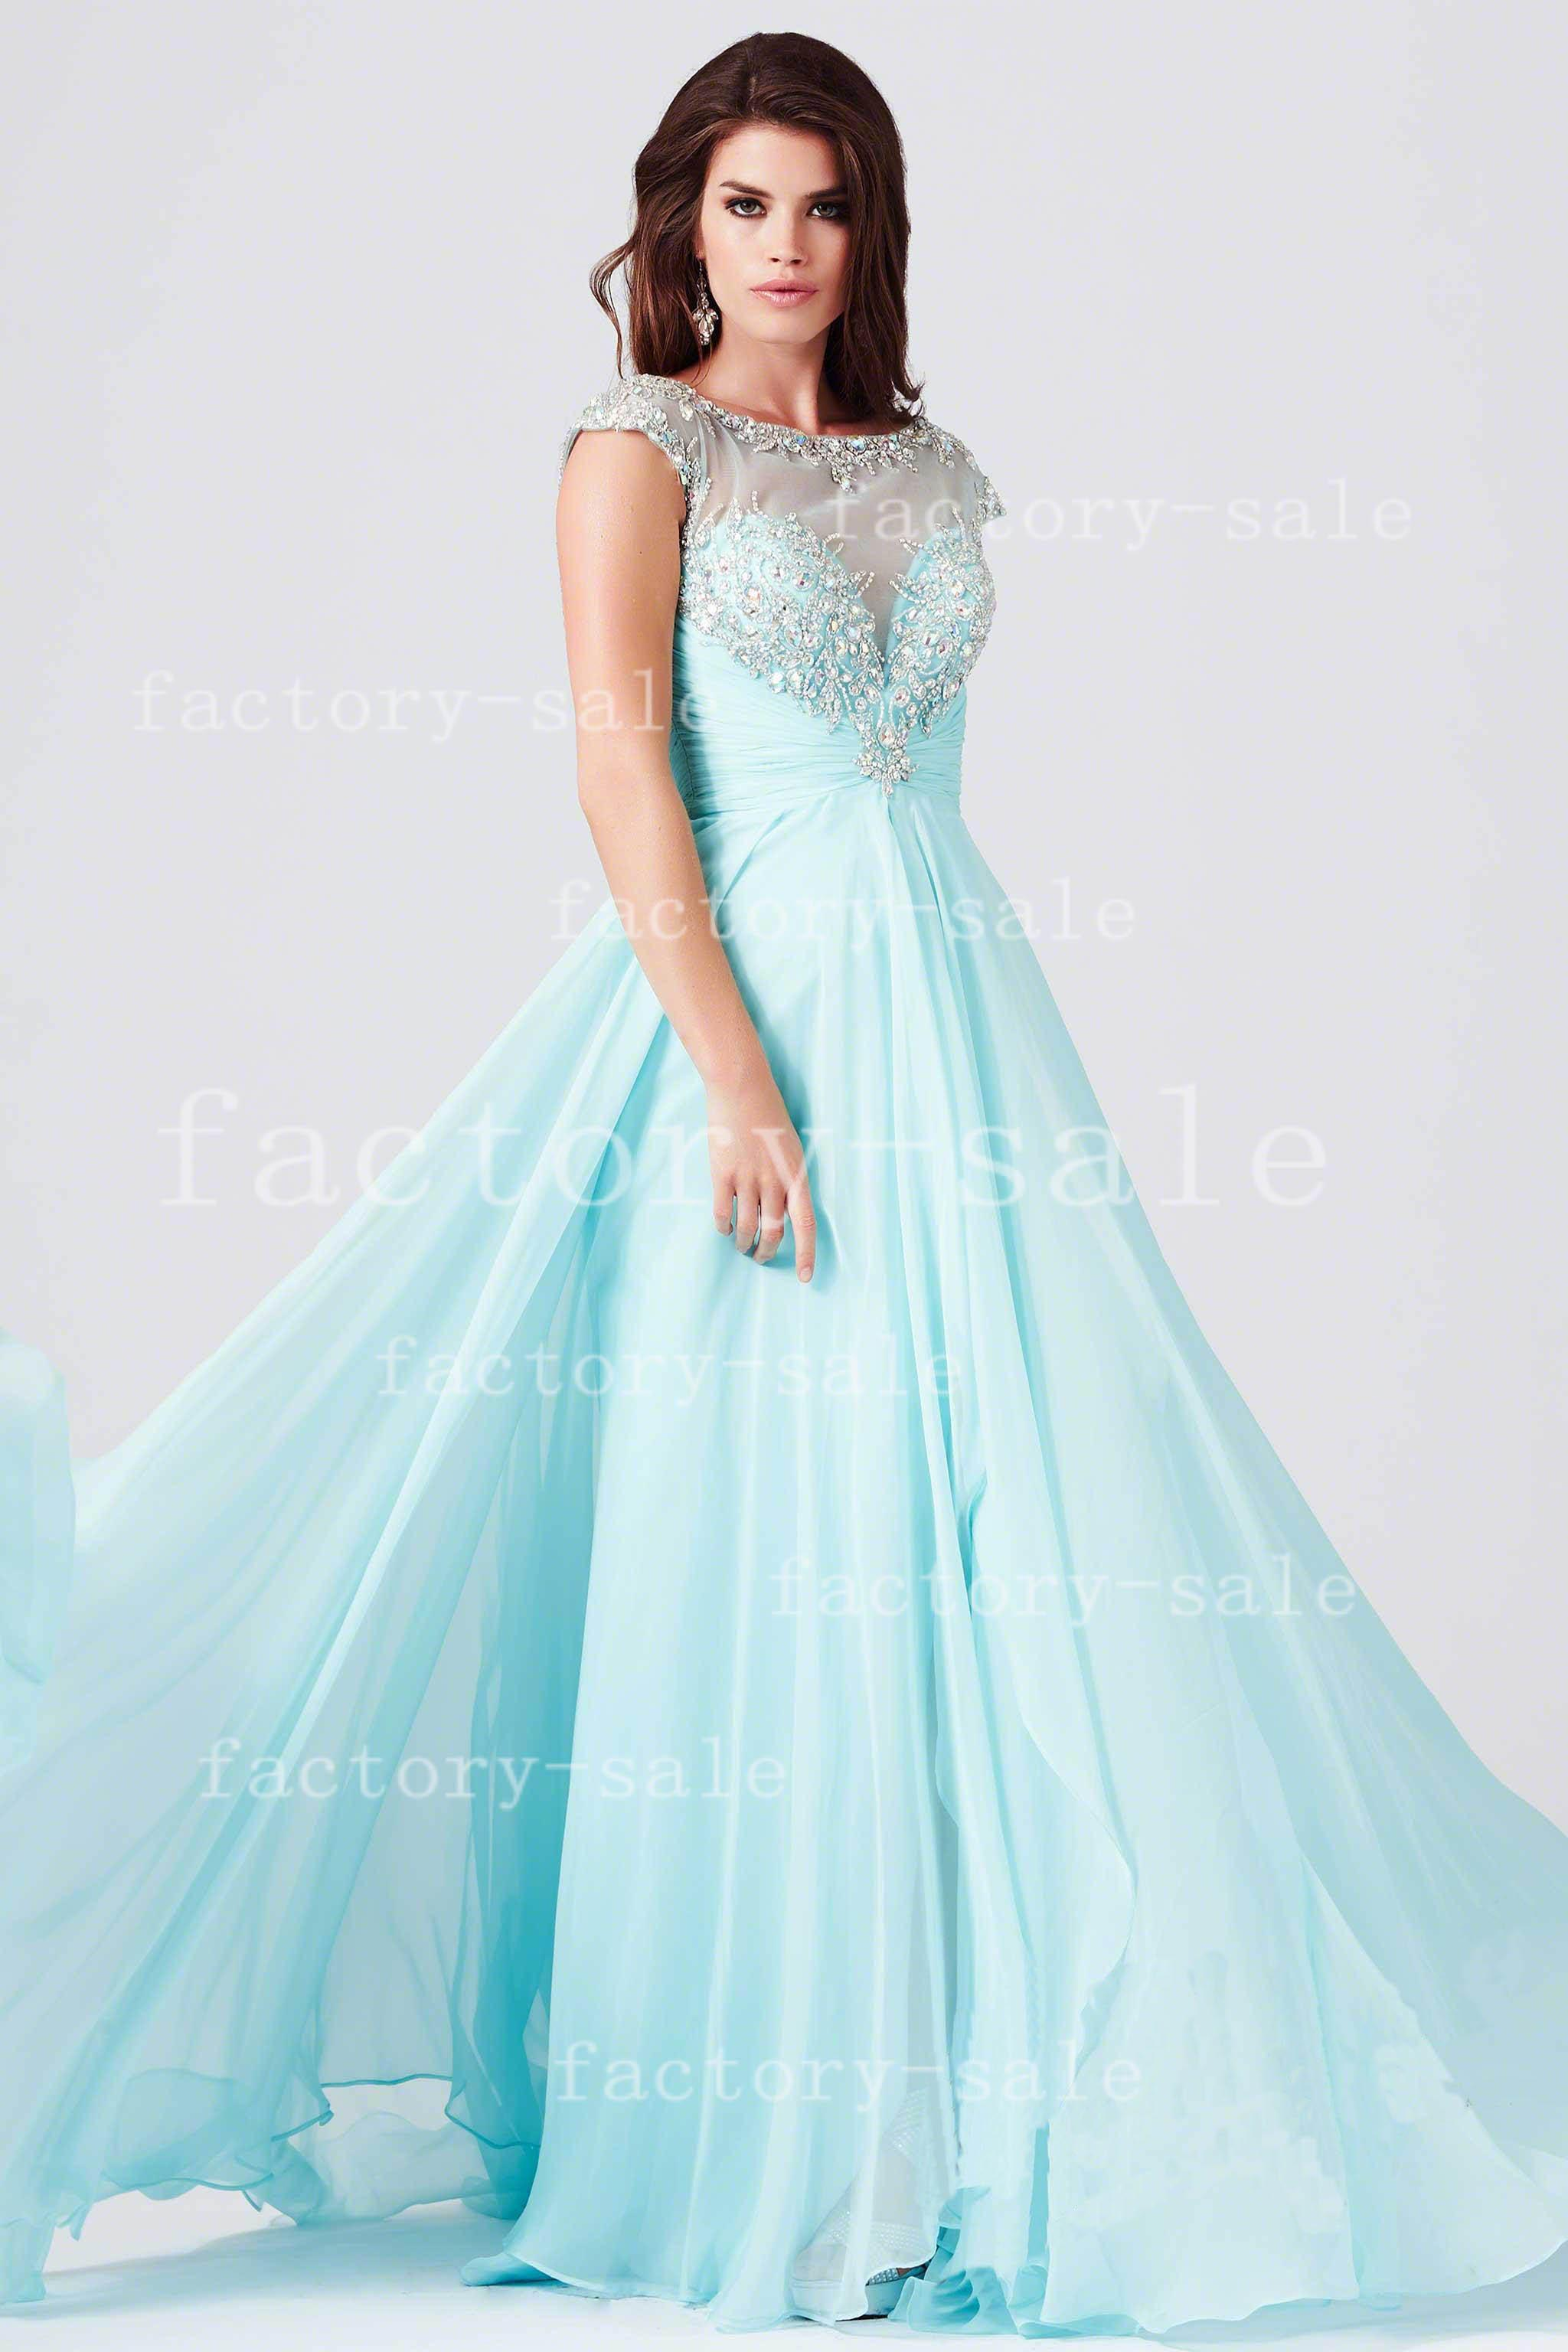 Cheap Prom Dresses Under 100 Dollars Cocktail Dresses 2016